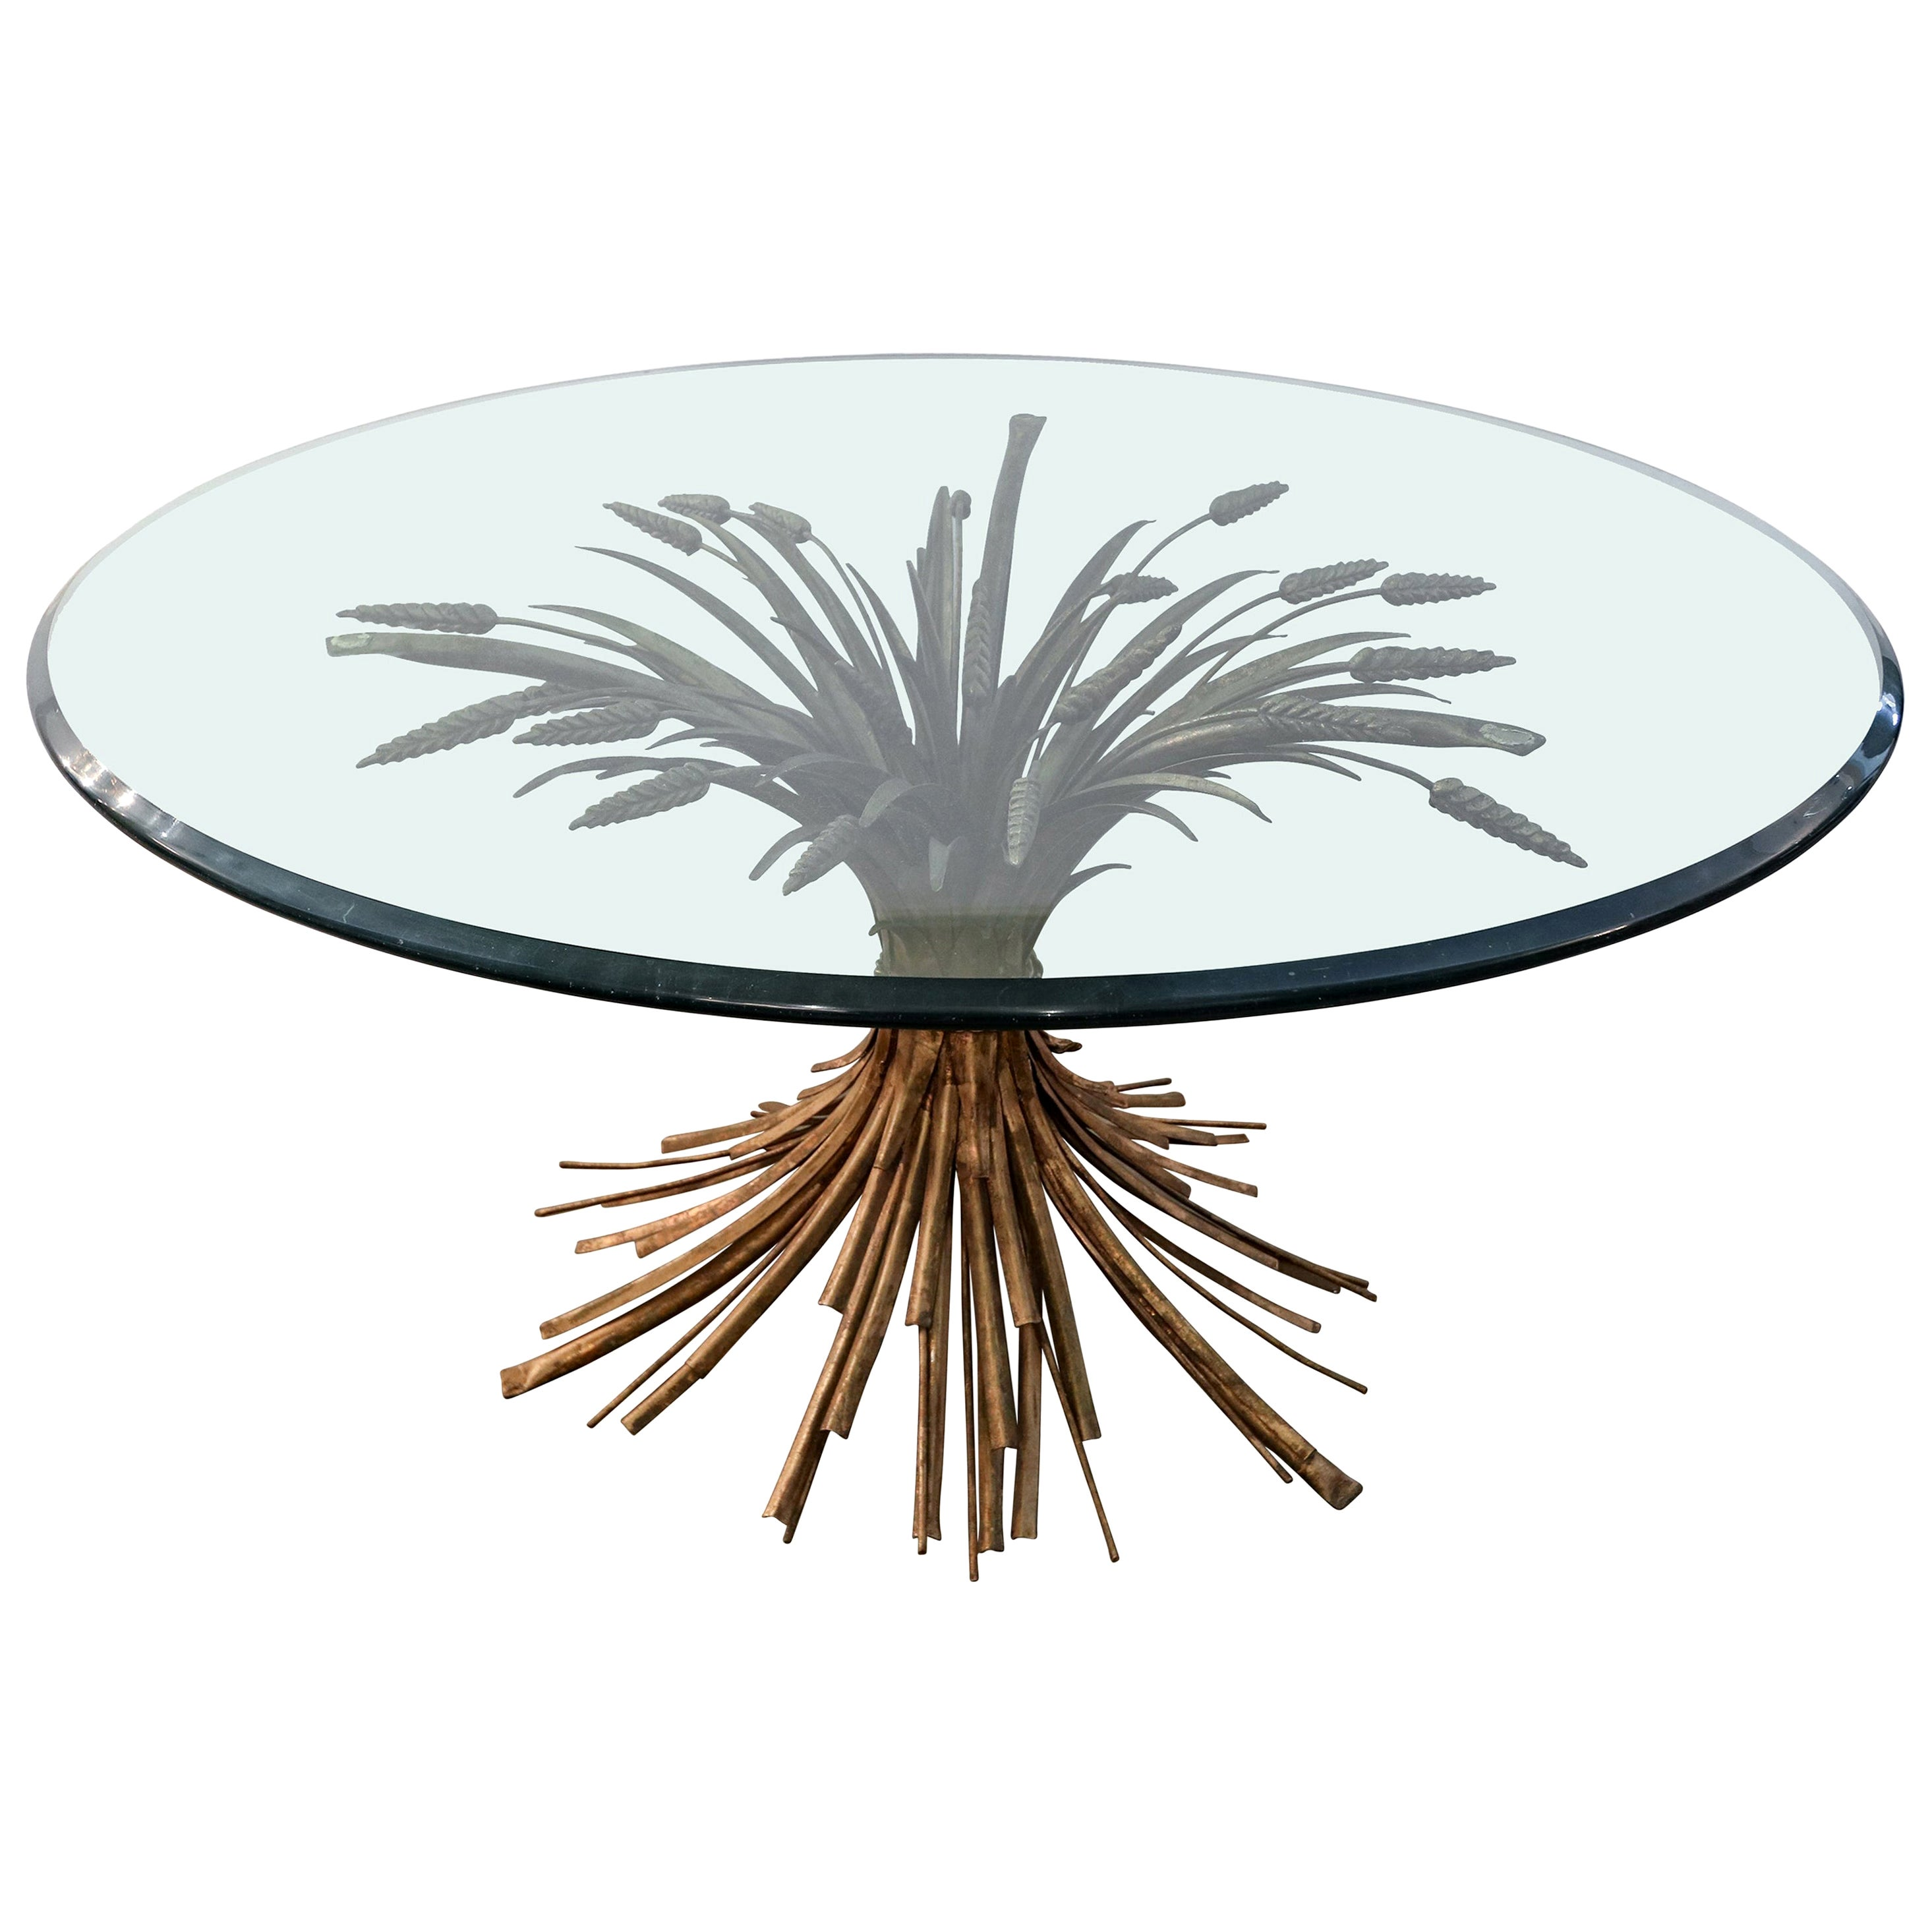 Sheaf of Wheat Metal Coffee Table with Glass Top, 1950s